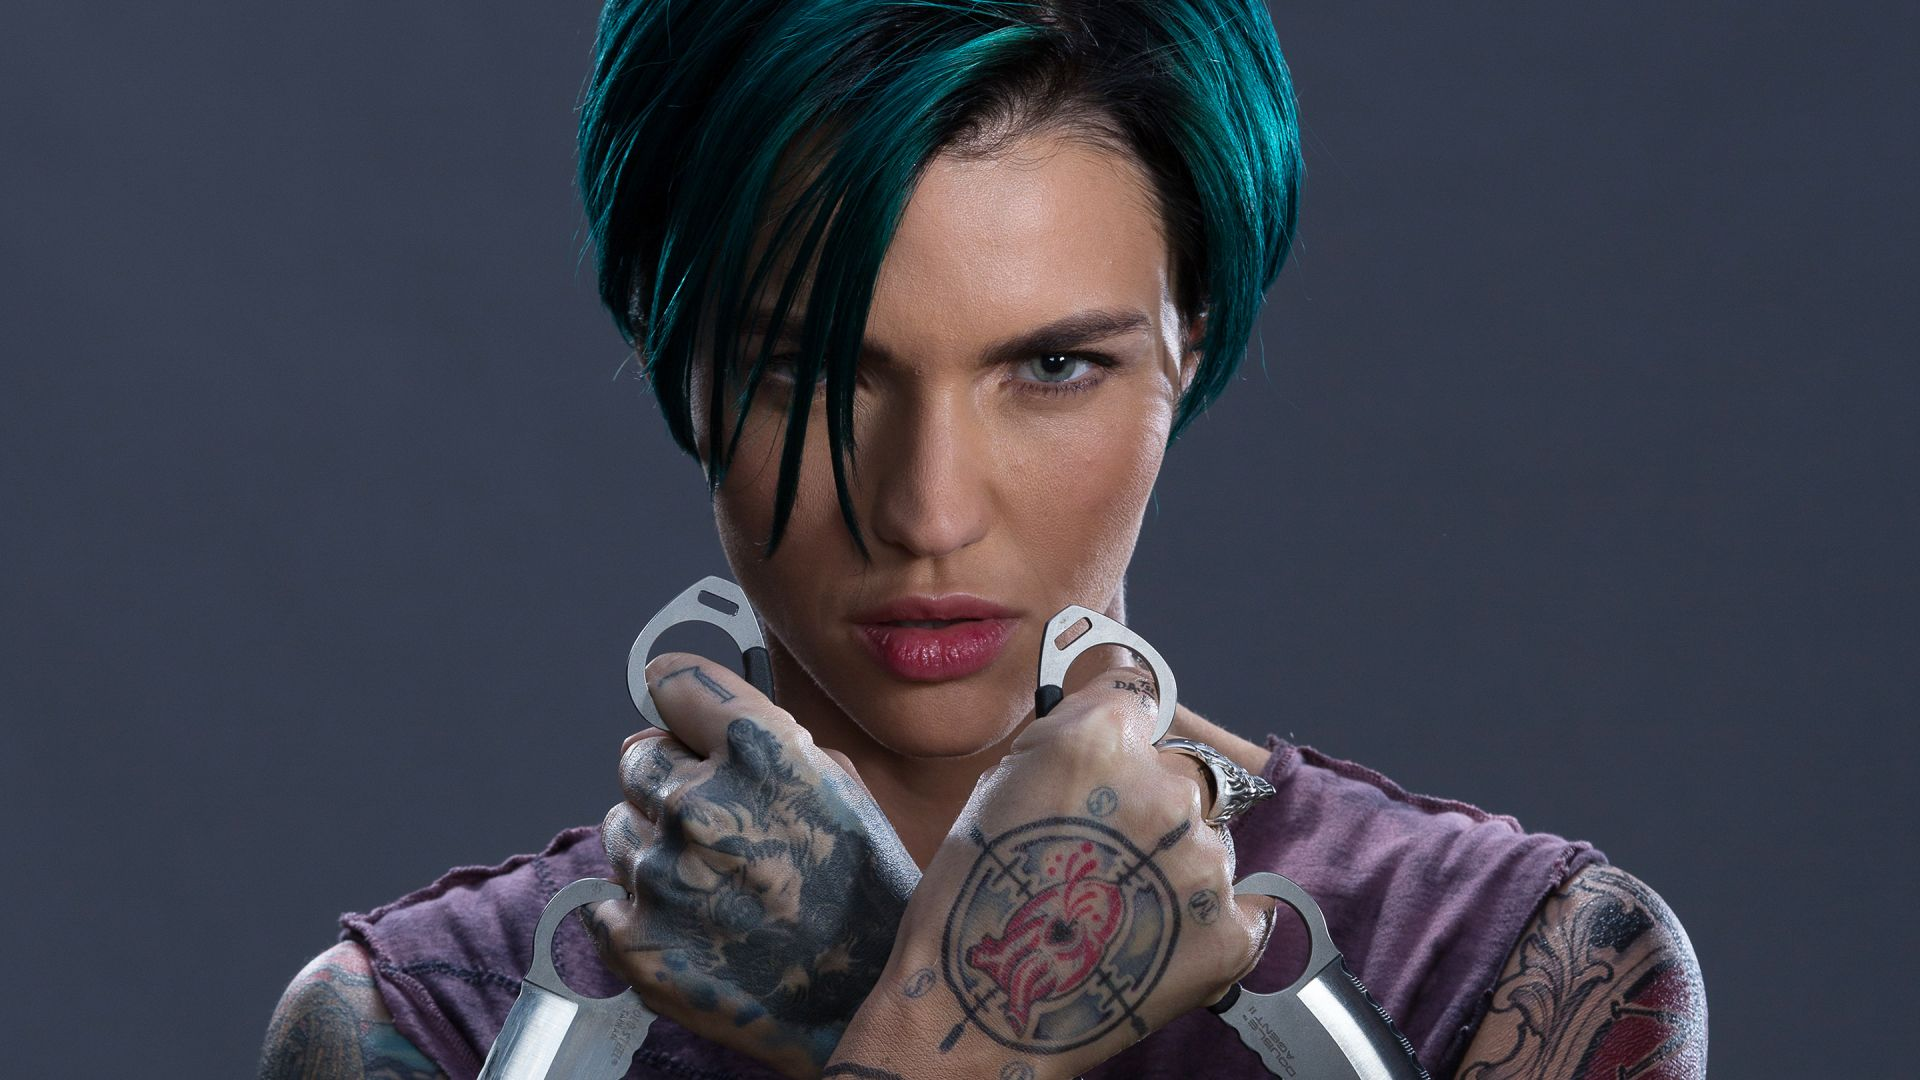 Wallpaper Ruby Rose from xxx return of xander cage movie